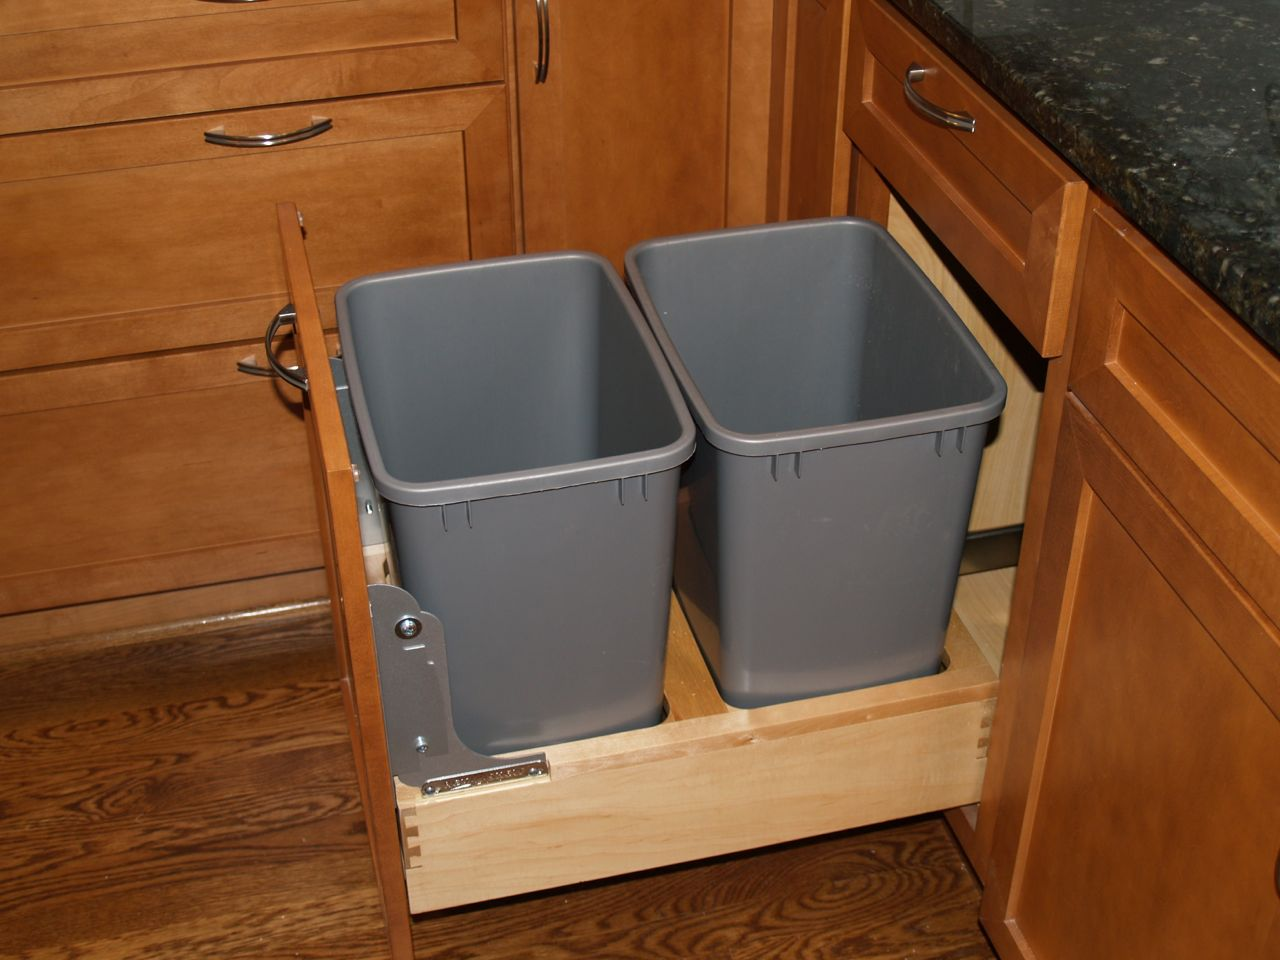 Ikea Utah Pull Out Trash Can And Recycling Bin – Geeky Girl Engineer